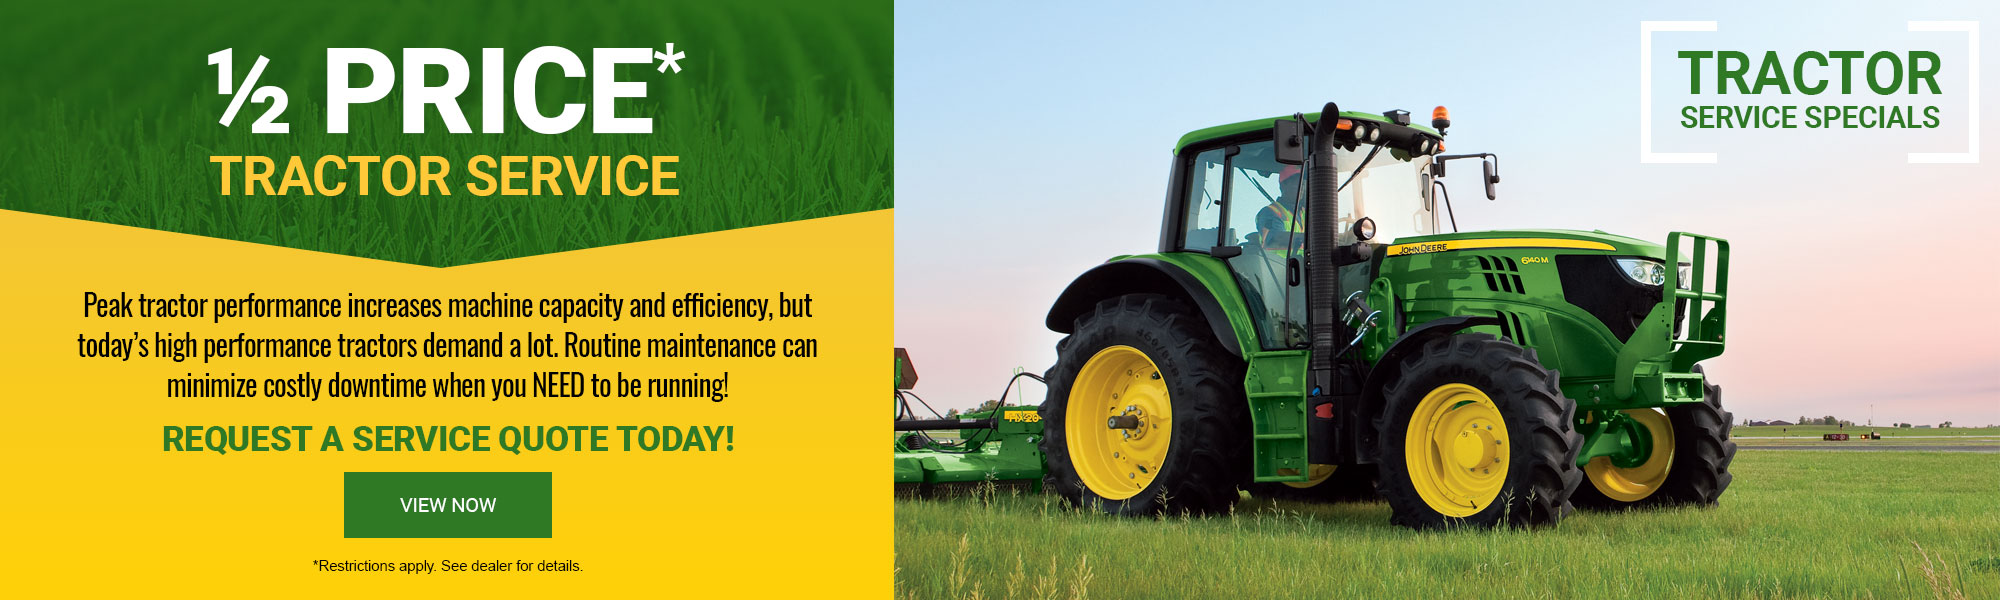 1/2 Price Tractor Service - Request A Quote Today